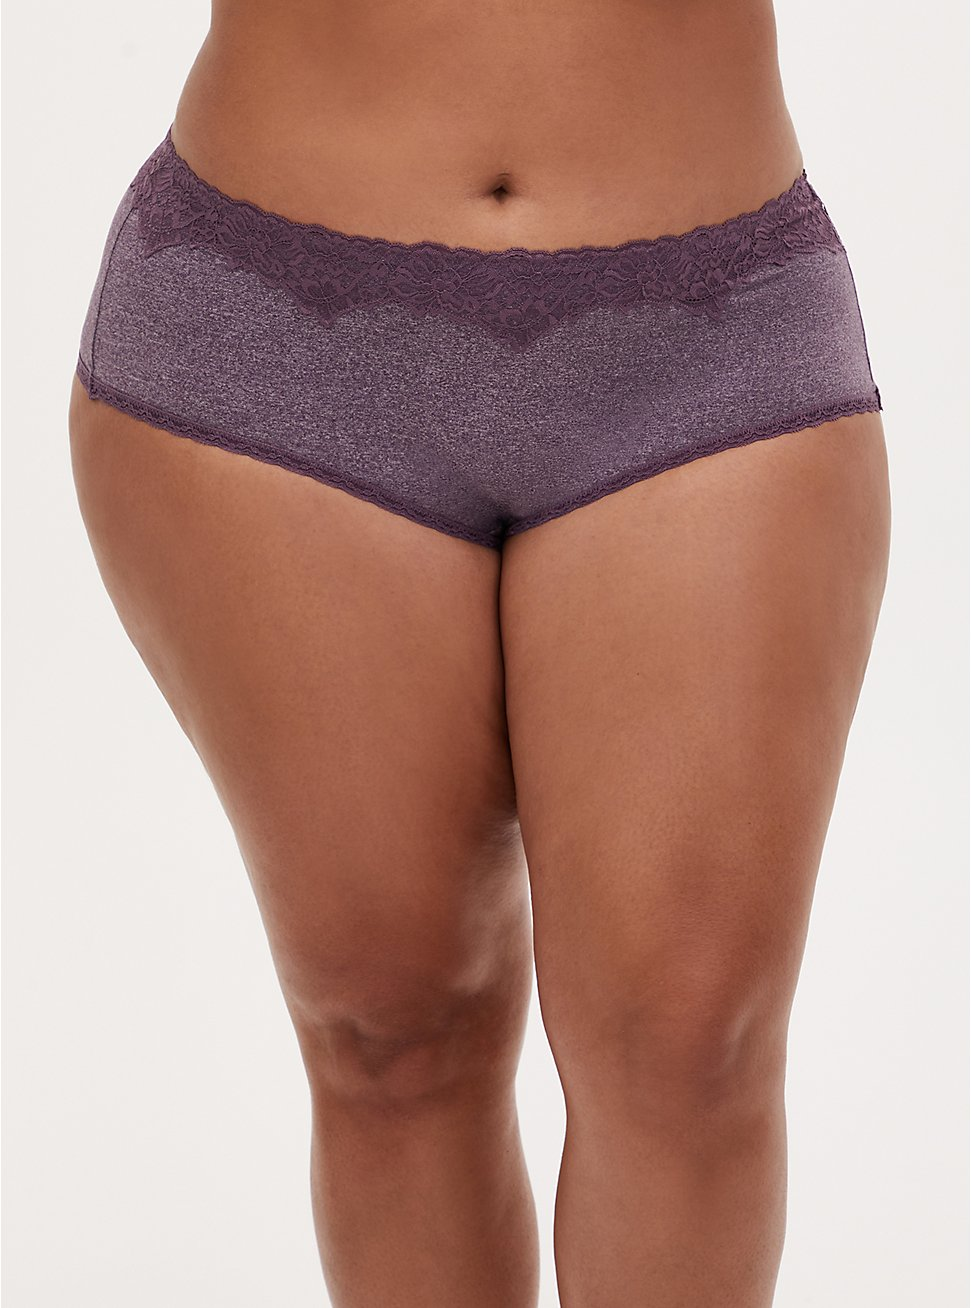 Heather Vintage Purple Cotton Cheeky Panty , VINTAGE VIOLET, hi-res